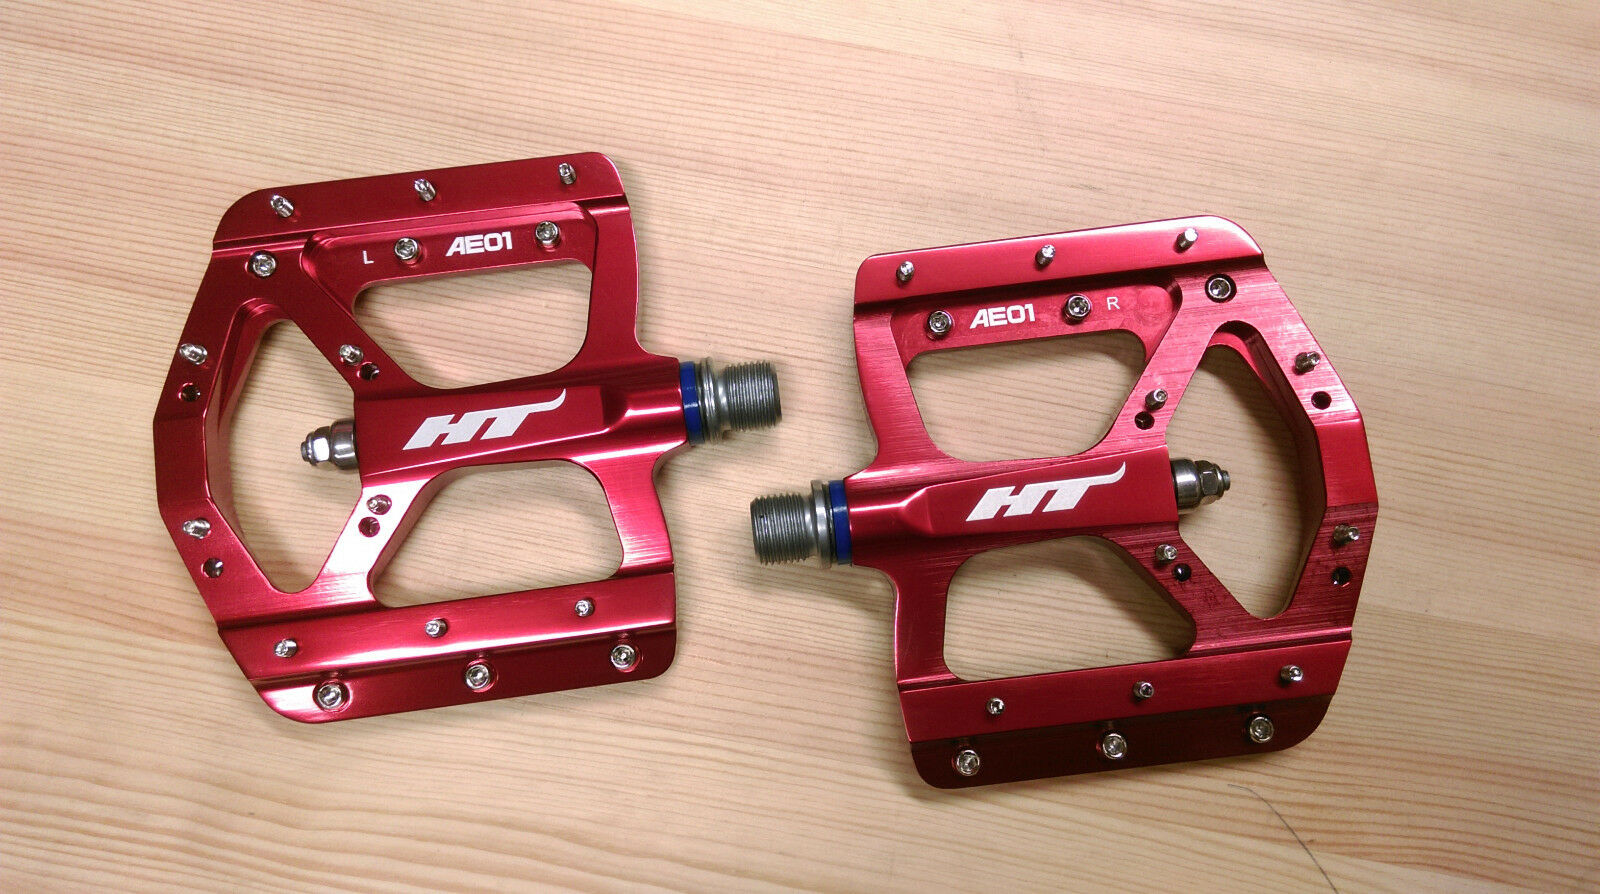 HT Pedals AE01 Evo Platform CrMo  MTB BMX DH Pedals  Red  order now with big discount & free delivery